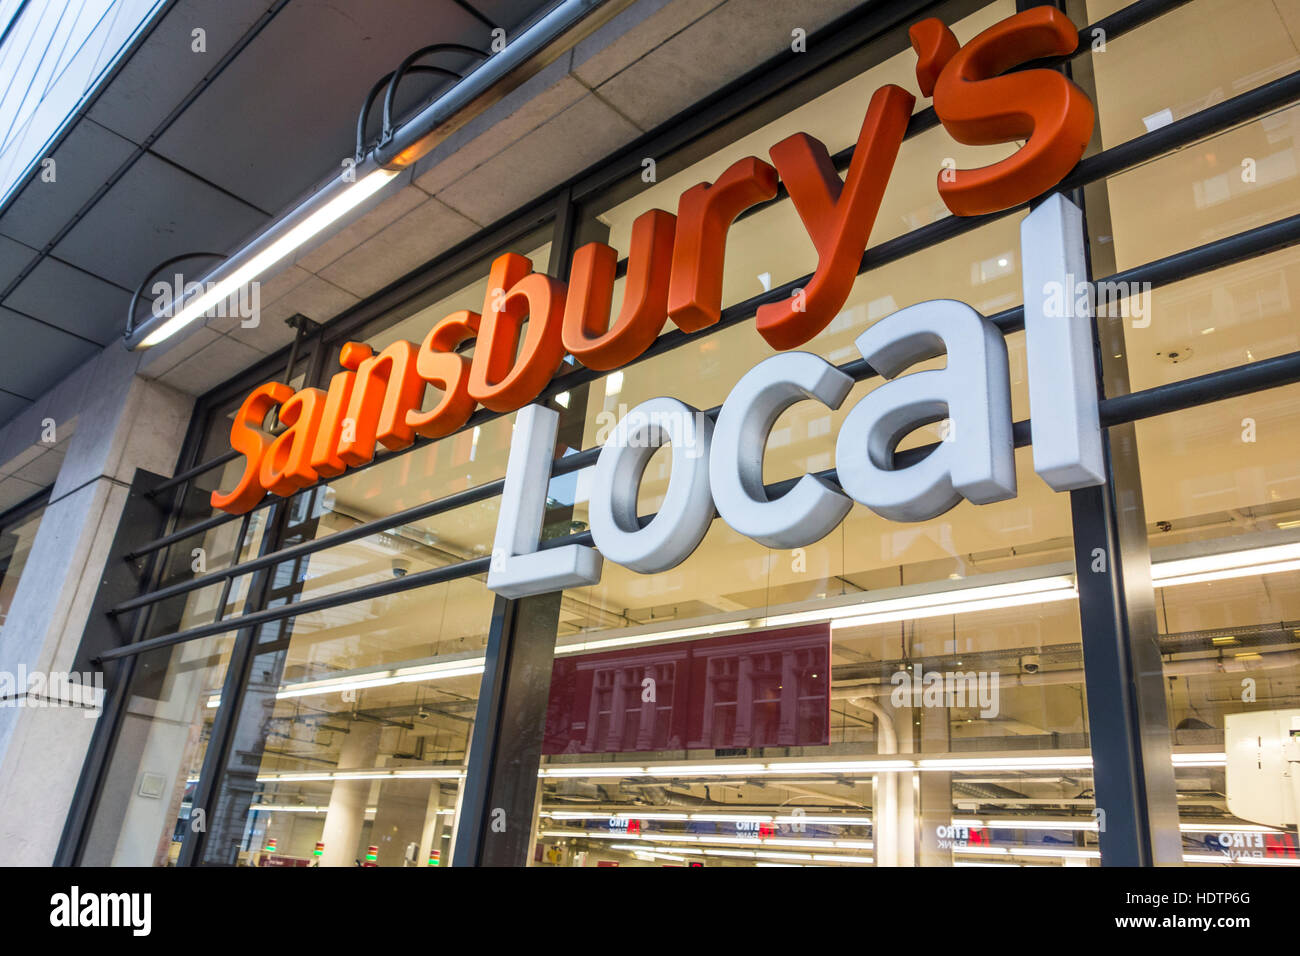 Marvelous Sainsburys Logo Stock Photos  Sainsburys Logo Stock Images  Alamy With Luxury Sainsburys Local Holborn London Uk  Stock Image With Extraordinary The Rose Garden Florist Also Lees Garden Reading In Addition How To Plant A Vegetable Garden And Garden Rock Pools As Well As Wickes Gardening Additionally Jolly Gardeners Earlsfield From Alamycom With   Extraordinary Sainsburys Logo Stock Photos  Sainsburys Logo Stock Images  Alamy With Marvelous Garden Rock Pools As Well As Wickes Gardening Additionally Jolly Gardeners Earlsfield And Luxury Sainsburys Local Holborn London Uk  Stock Image Via Alamycom